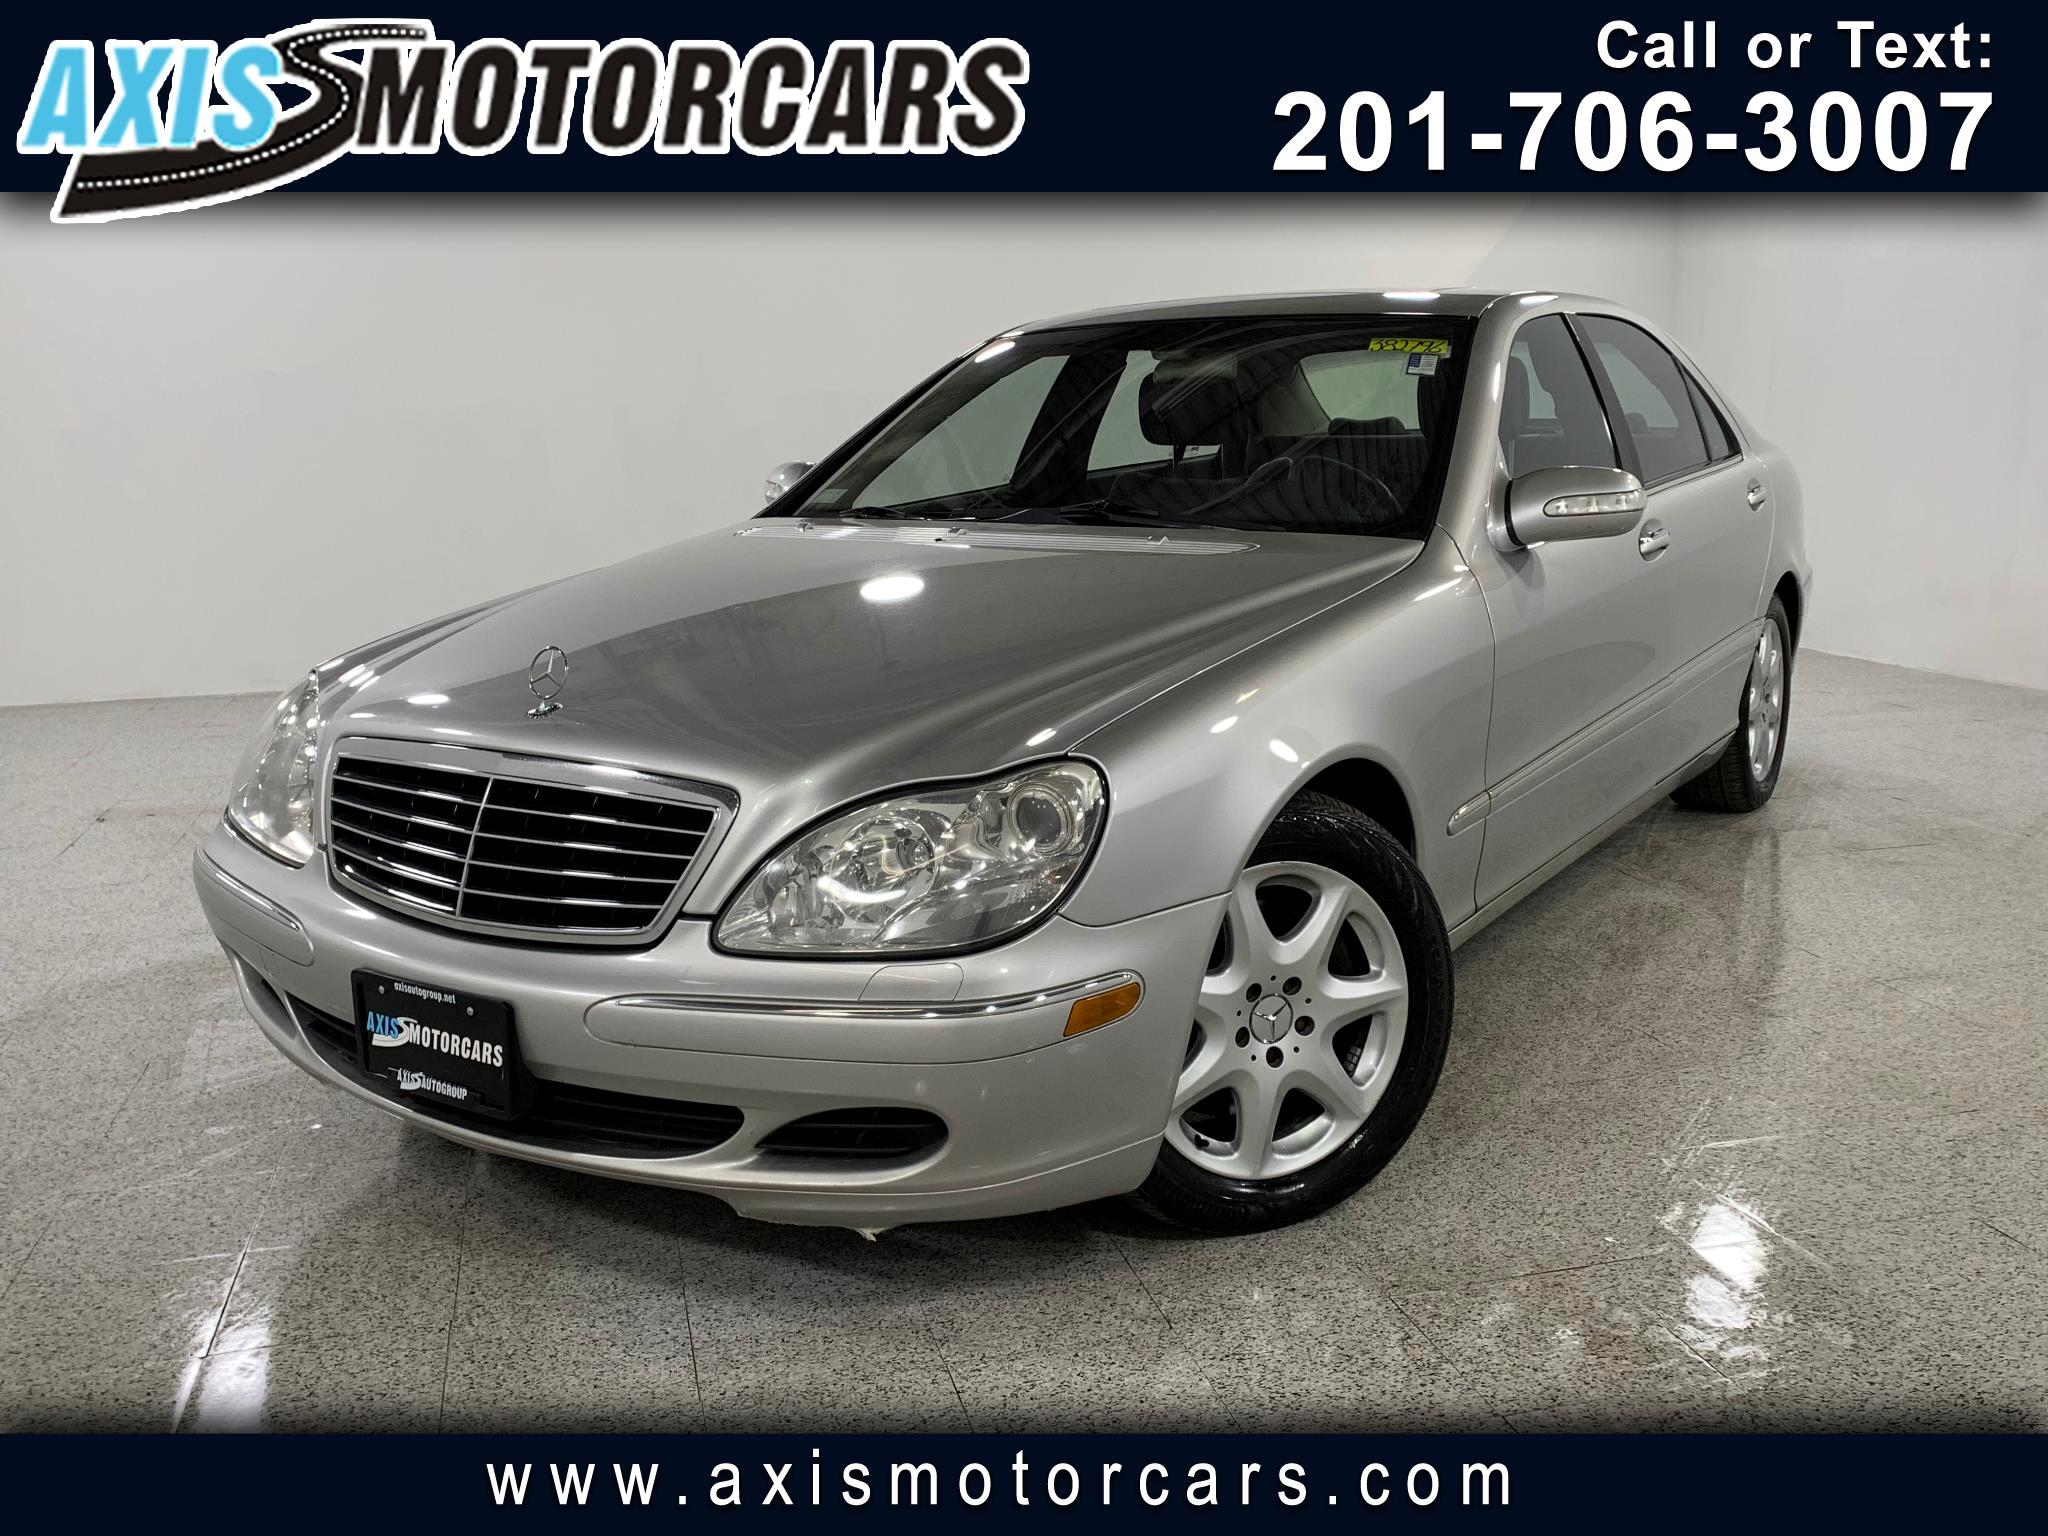 2003 Mercedes-Benz S-Class S430 w/Navigation Bose Sound System Sunroof